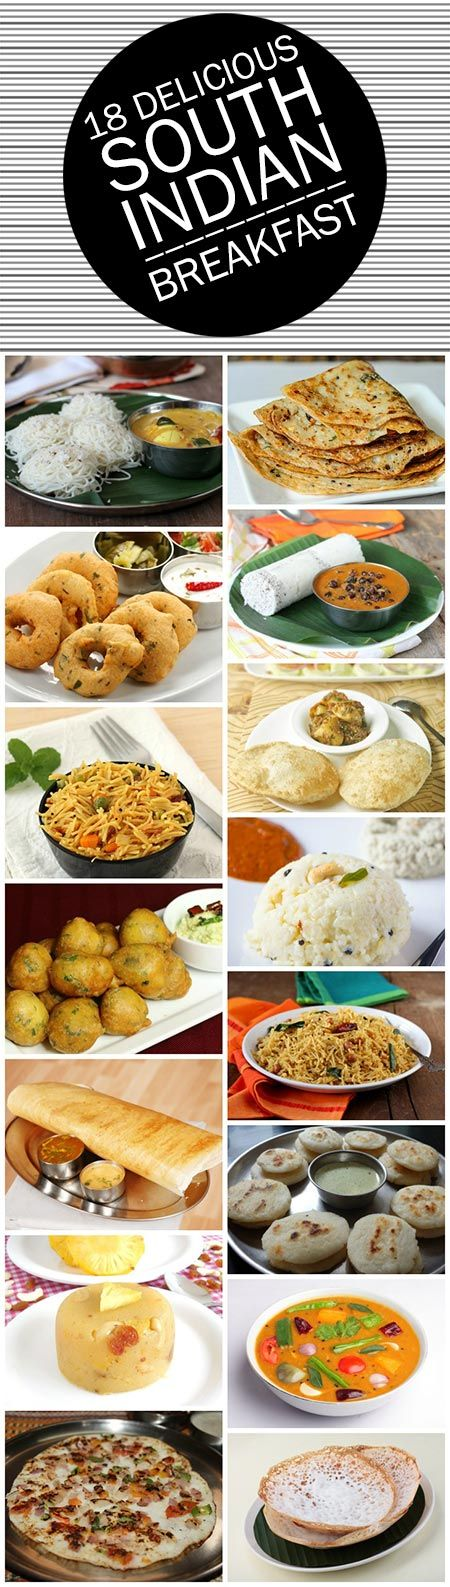 1156 best indian veg food images on pinterest cooking recipes 18 delicious south indian breakfast recipes you must try forumfinder